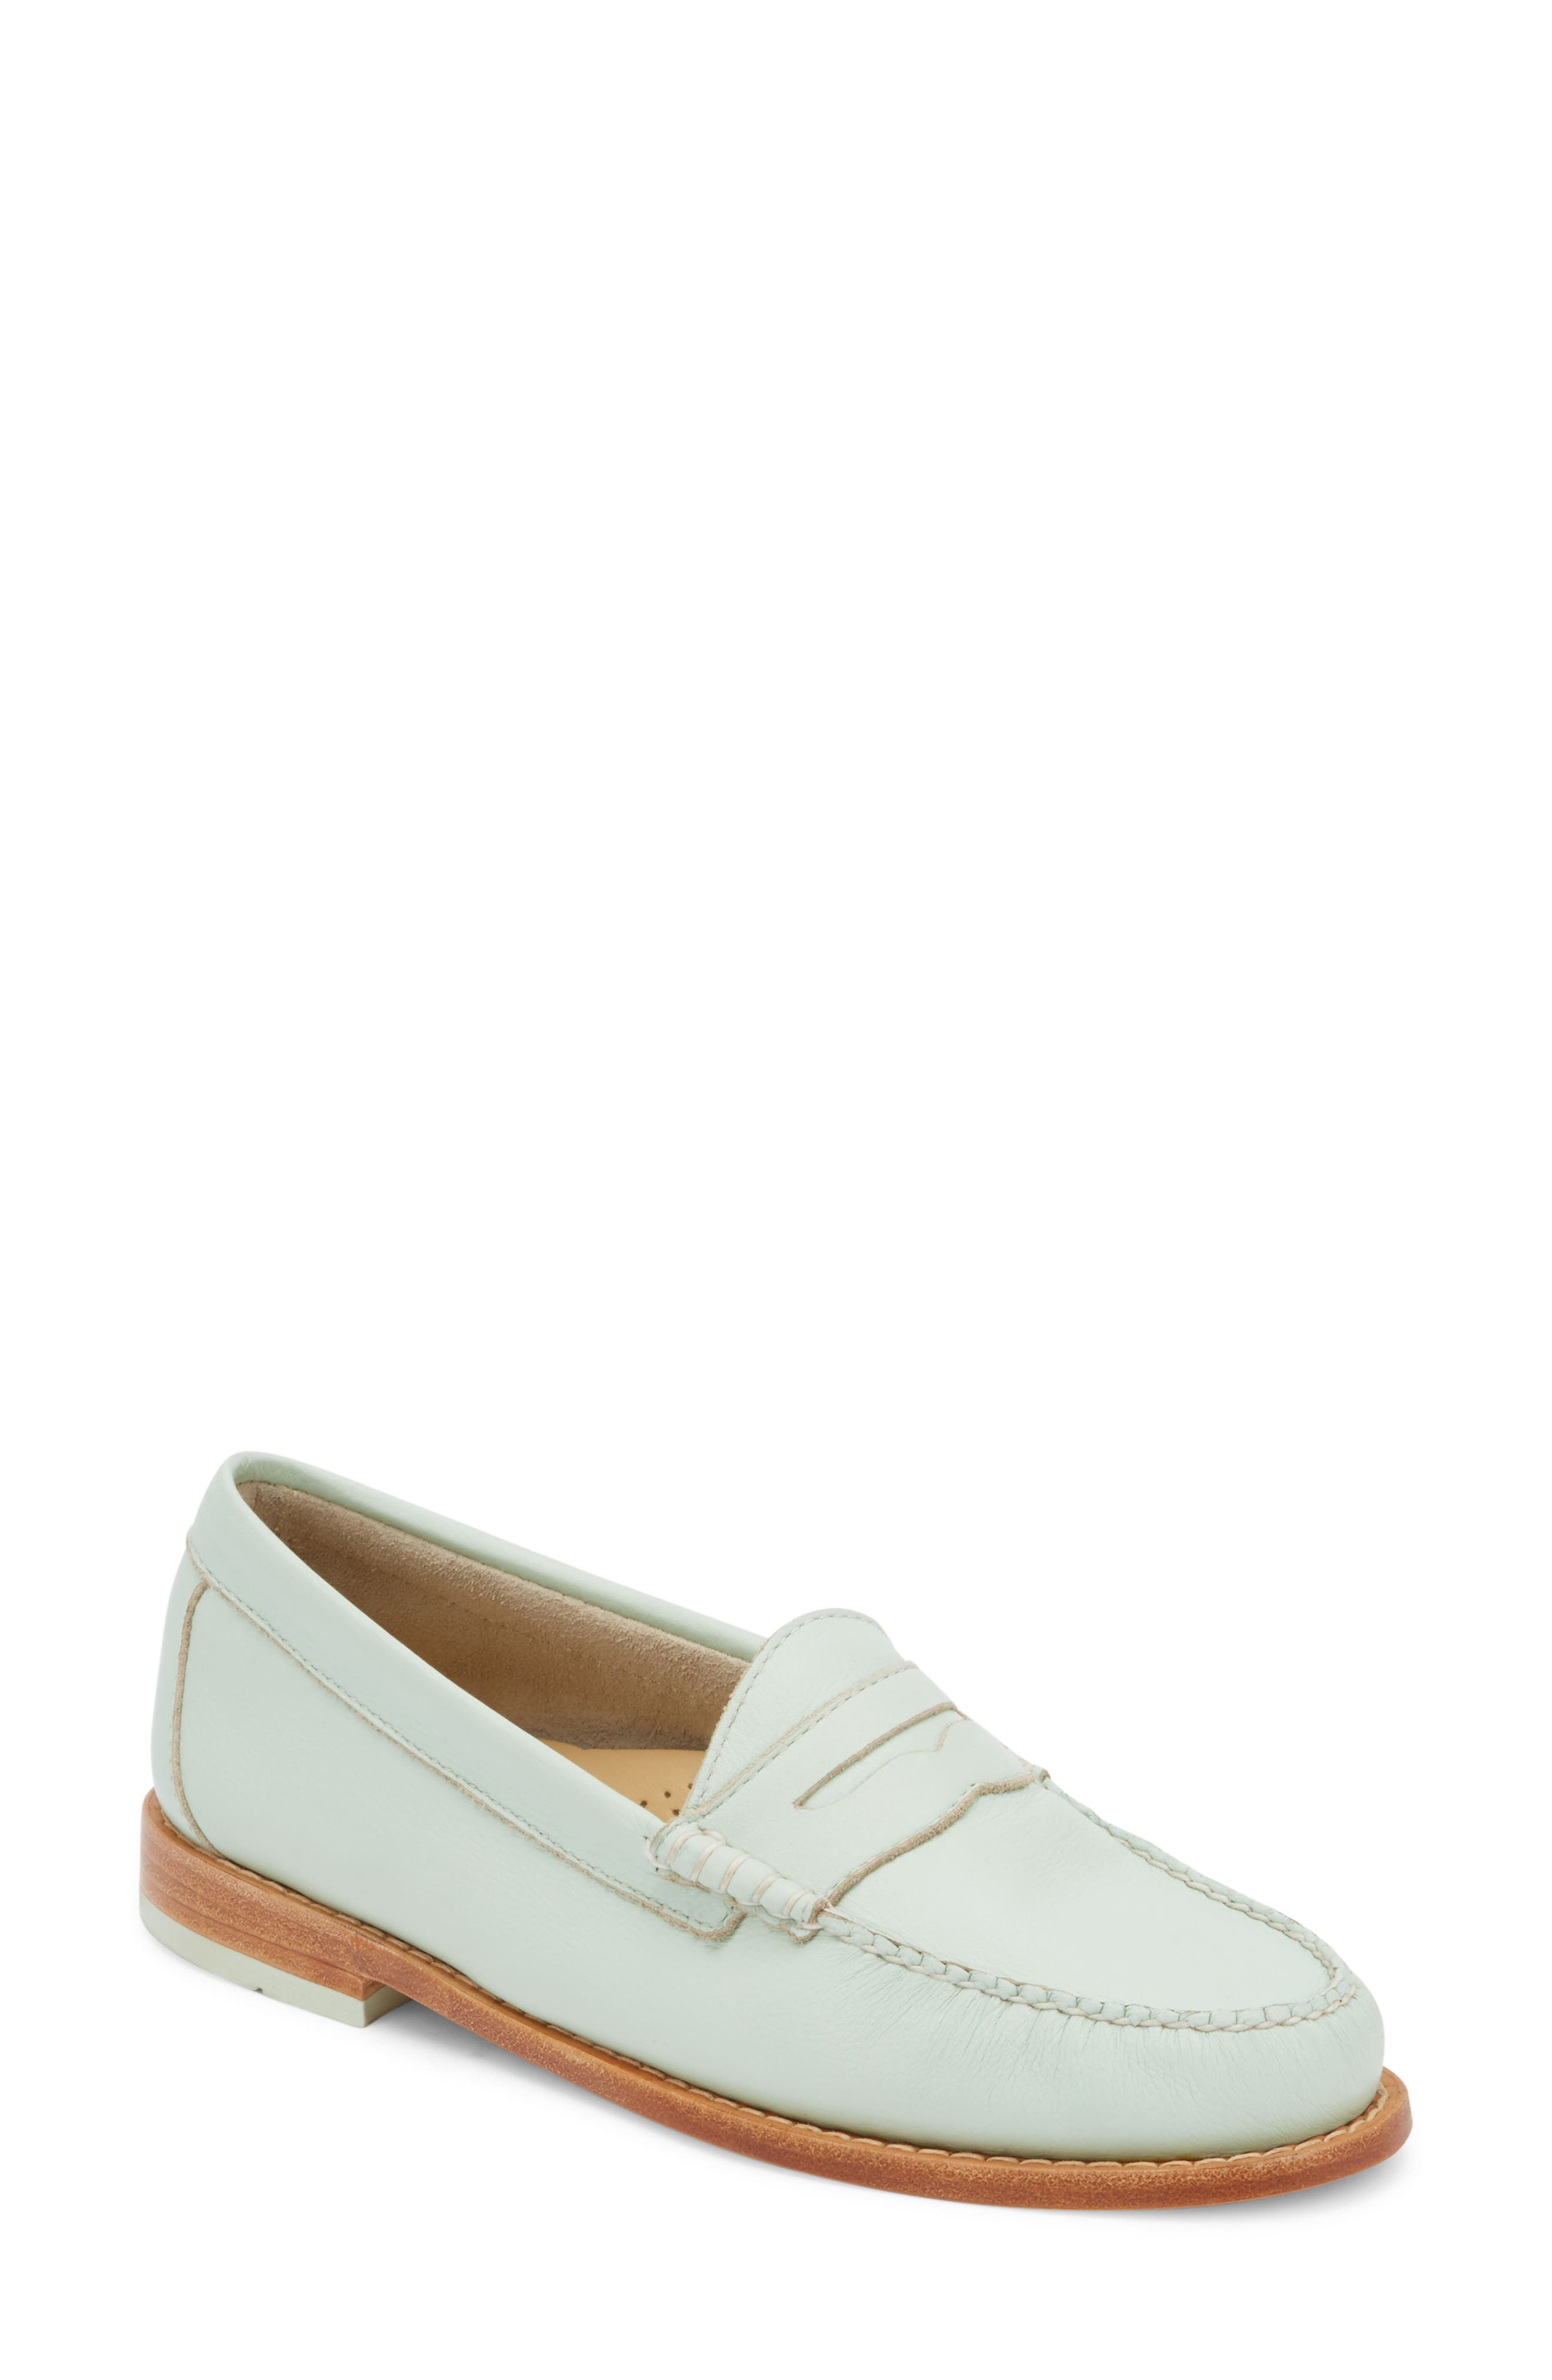 'Whitney' Loafer,                             Main thumbnail 1, color,                             MINT GREEN LEATHER